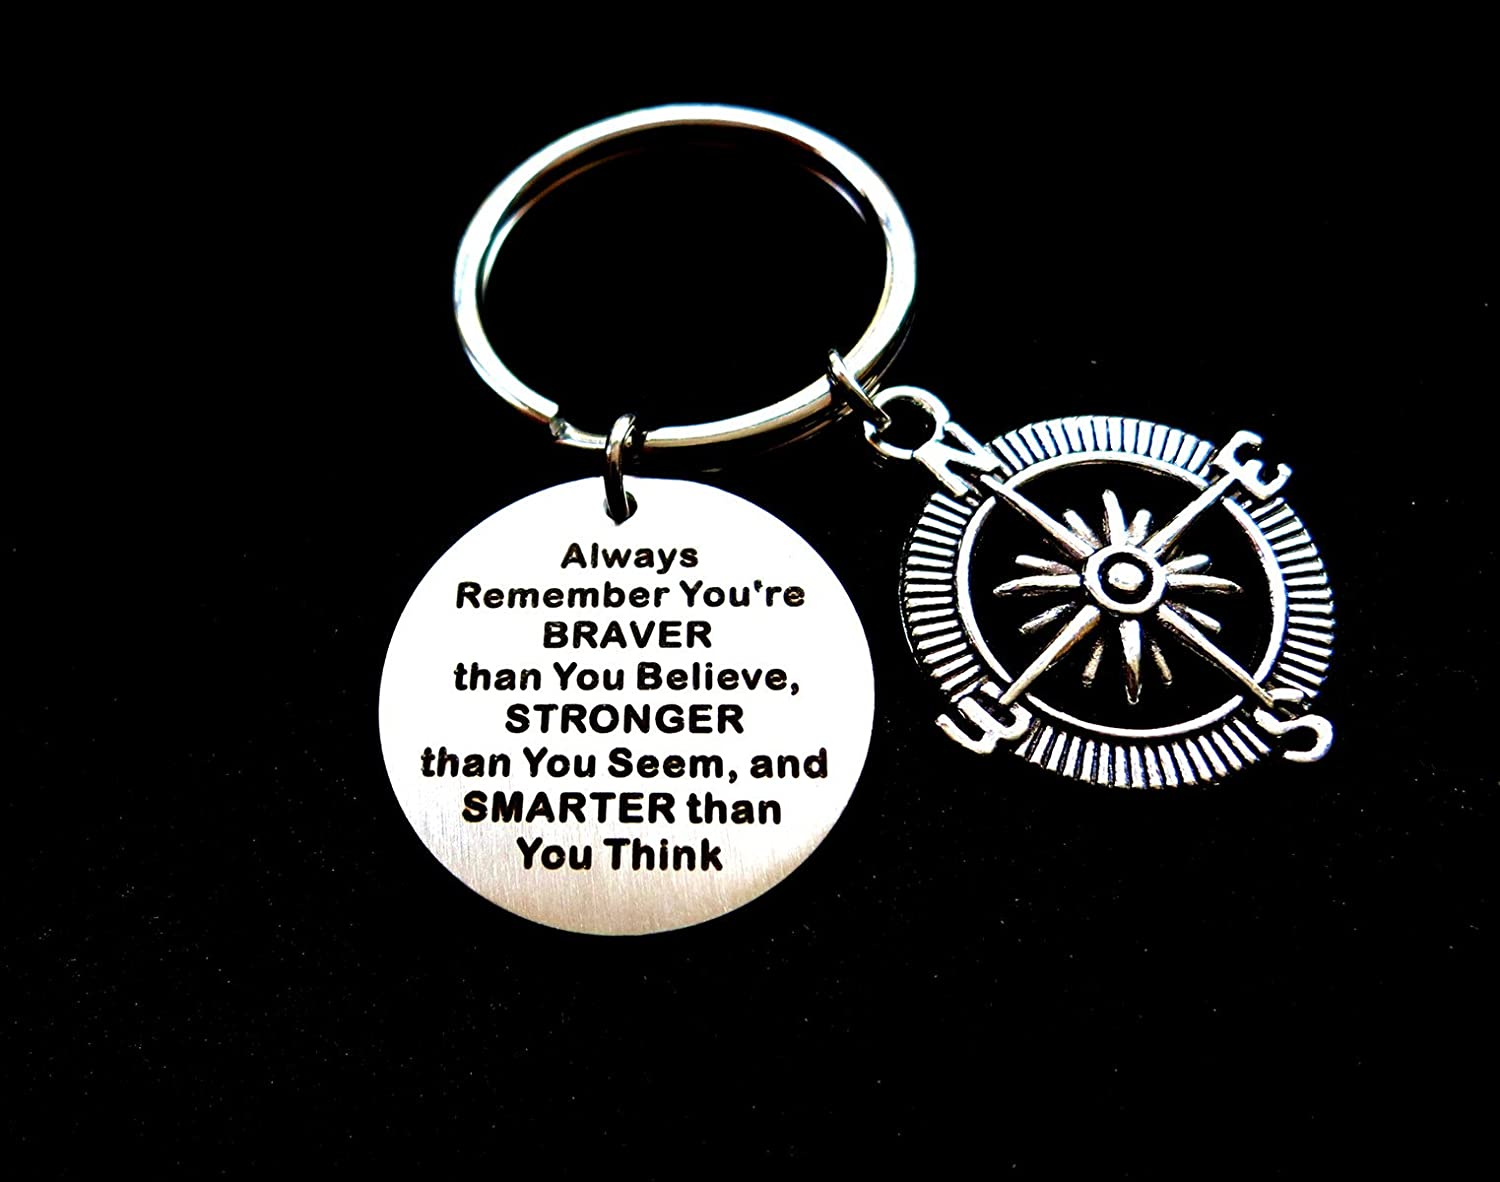 Graduation Gift With Compass Charm Always Remember You Are Braver Than You Believe Inspirational Keychain Gift, Encouragement Keyring Gift